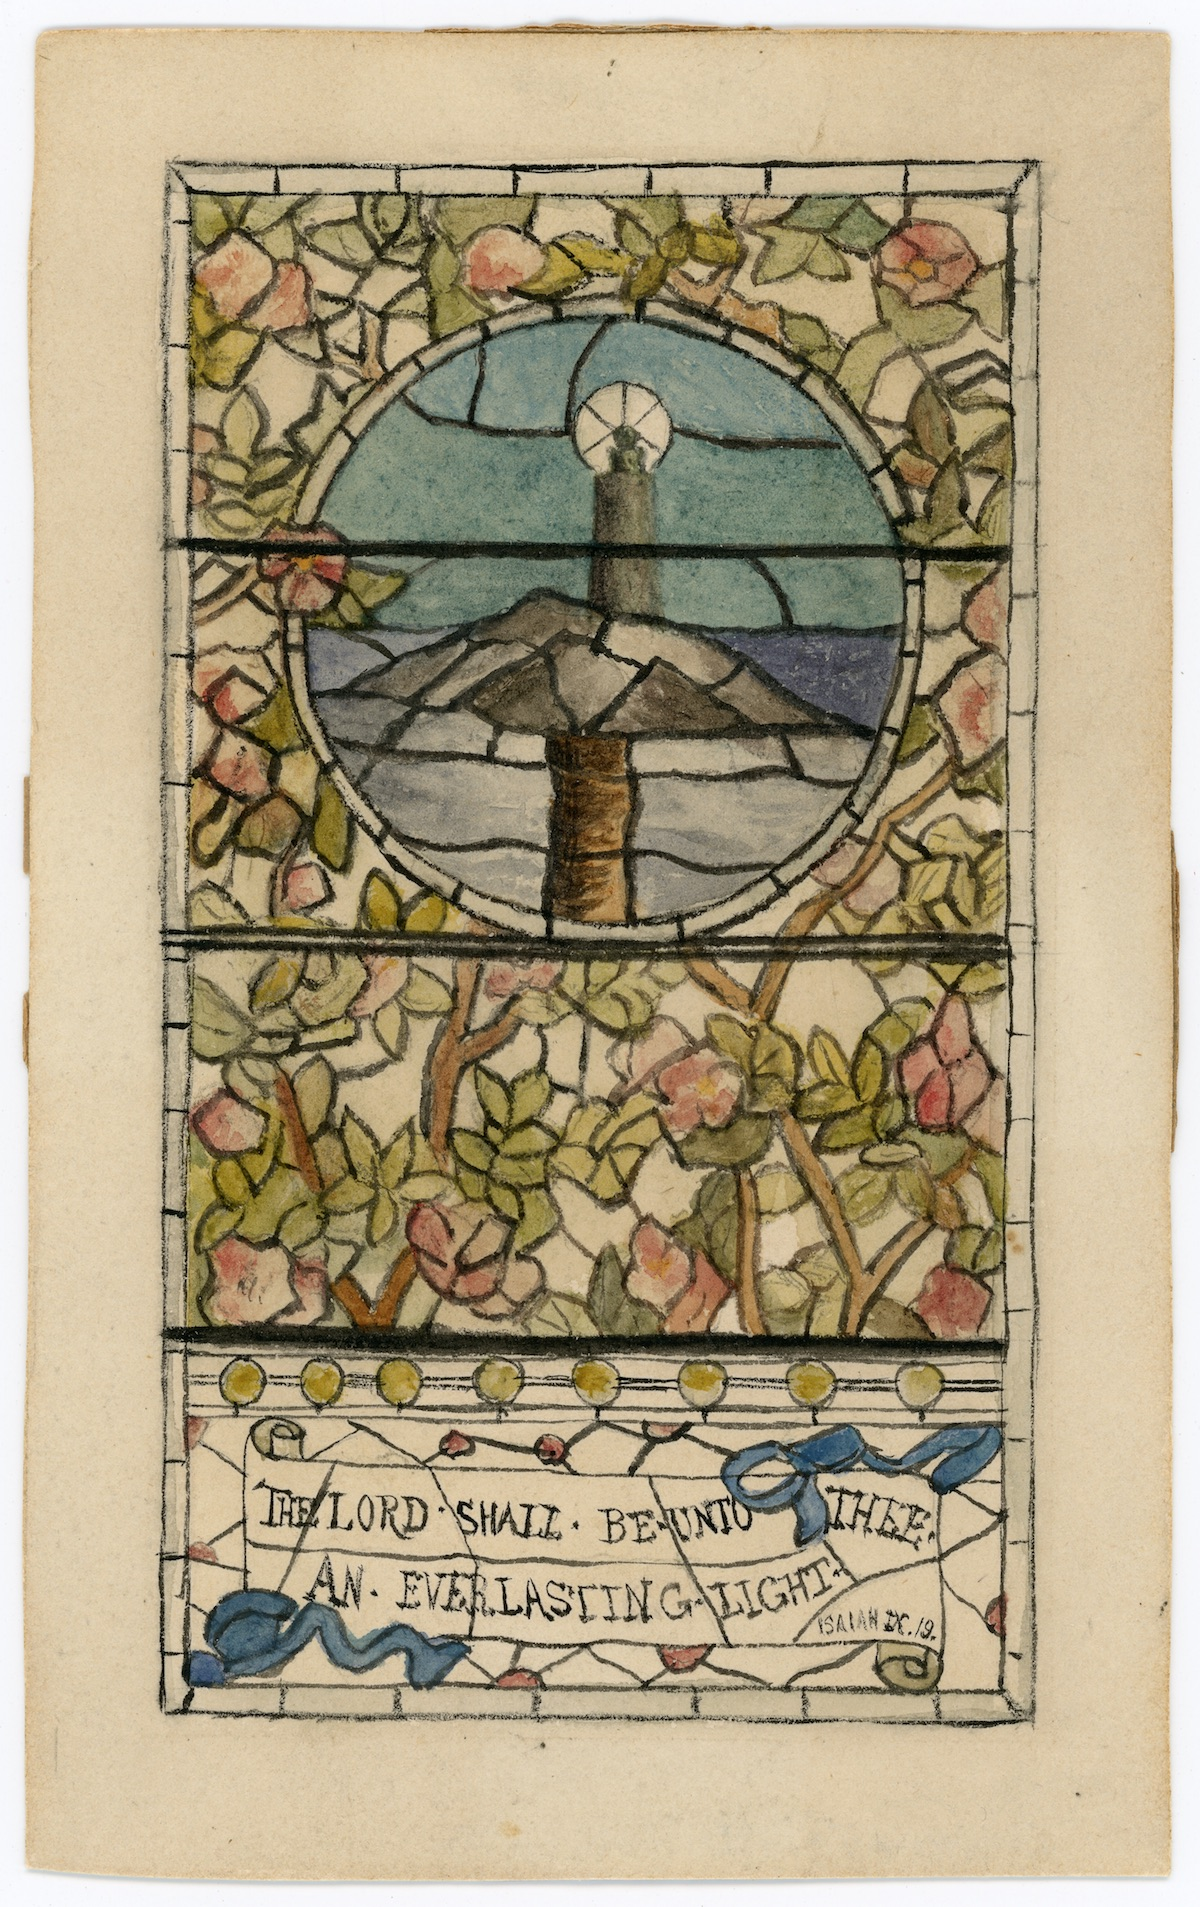 Original Christmas card painted by Daisy Doane.